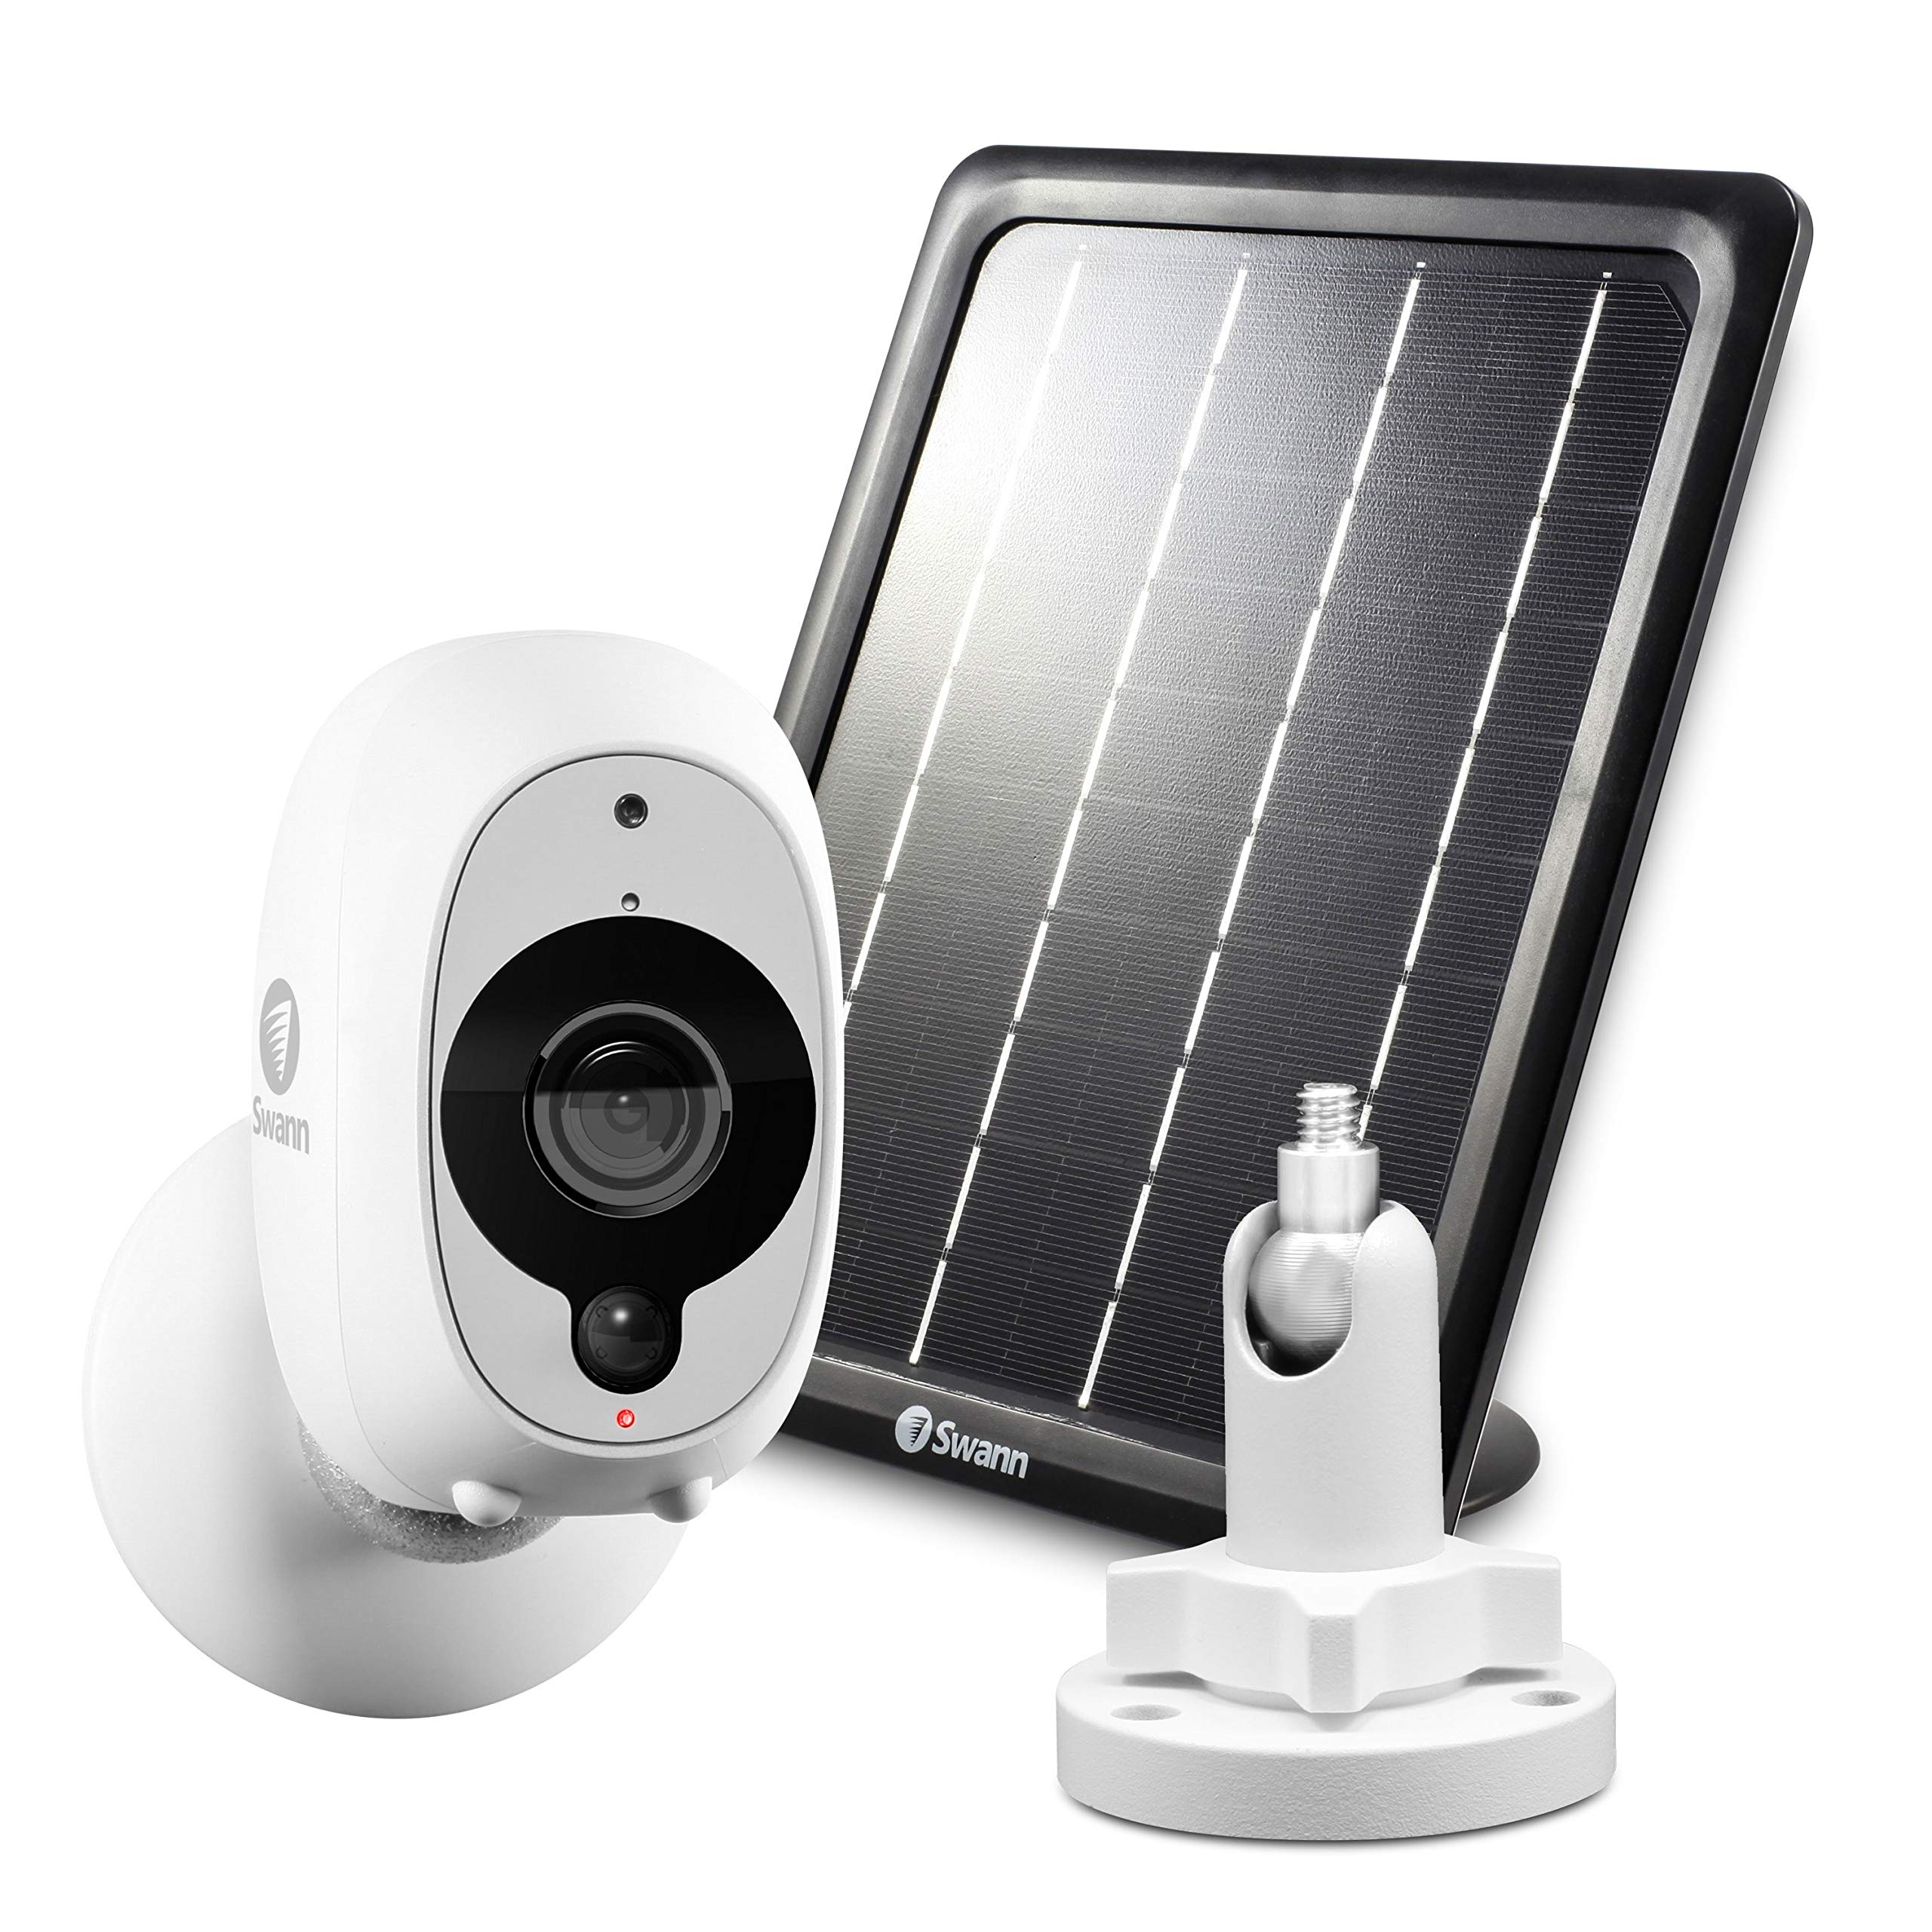 Swann Smart Security Camera Kit: 1080p Full HD Wireless Security Camera with Solar Panel & Outdoor Mounting Stand by Swann